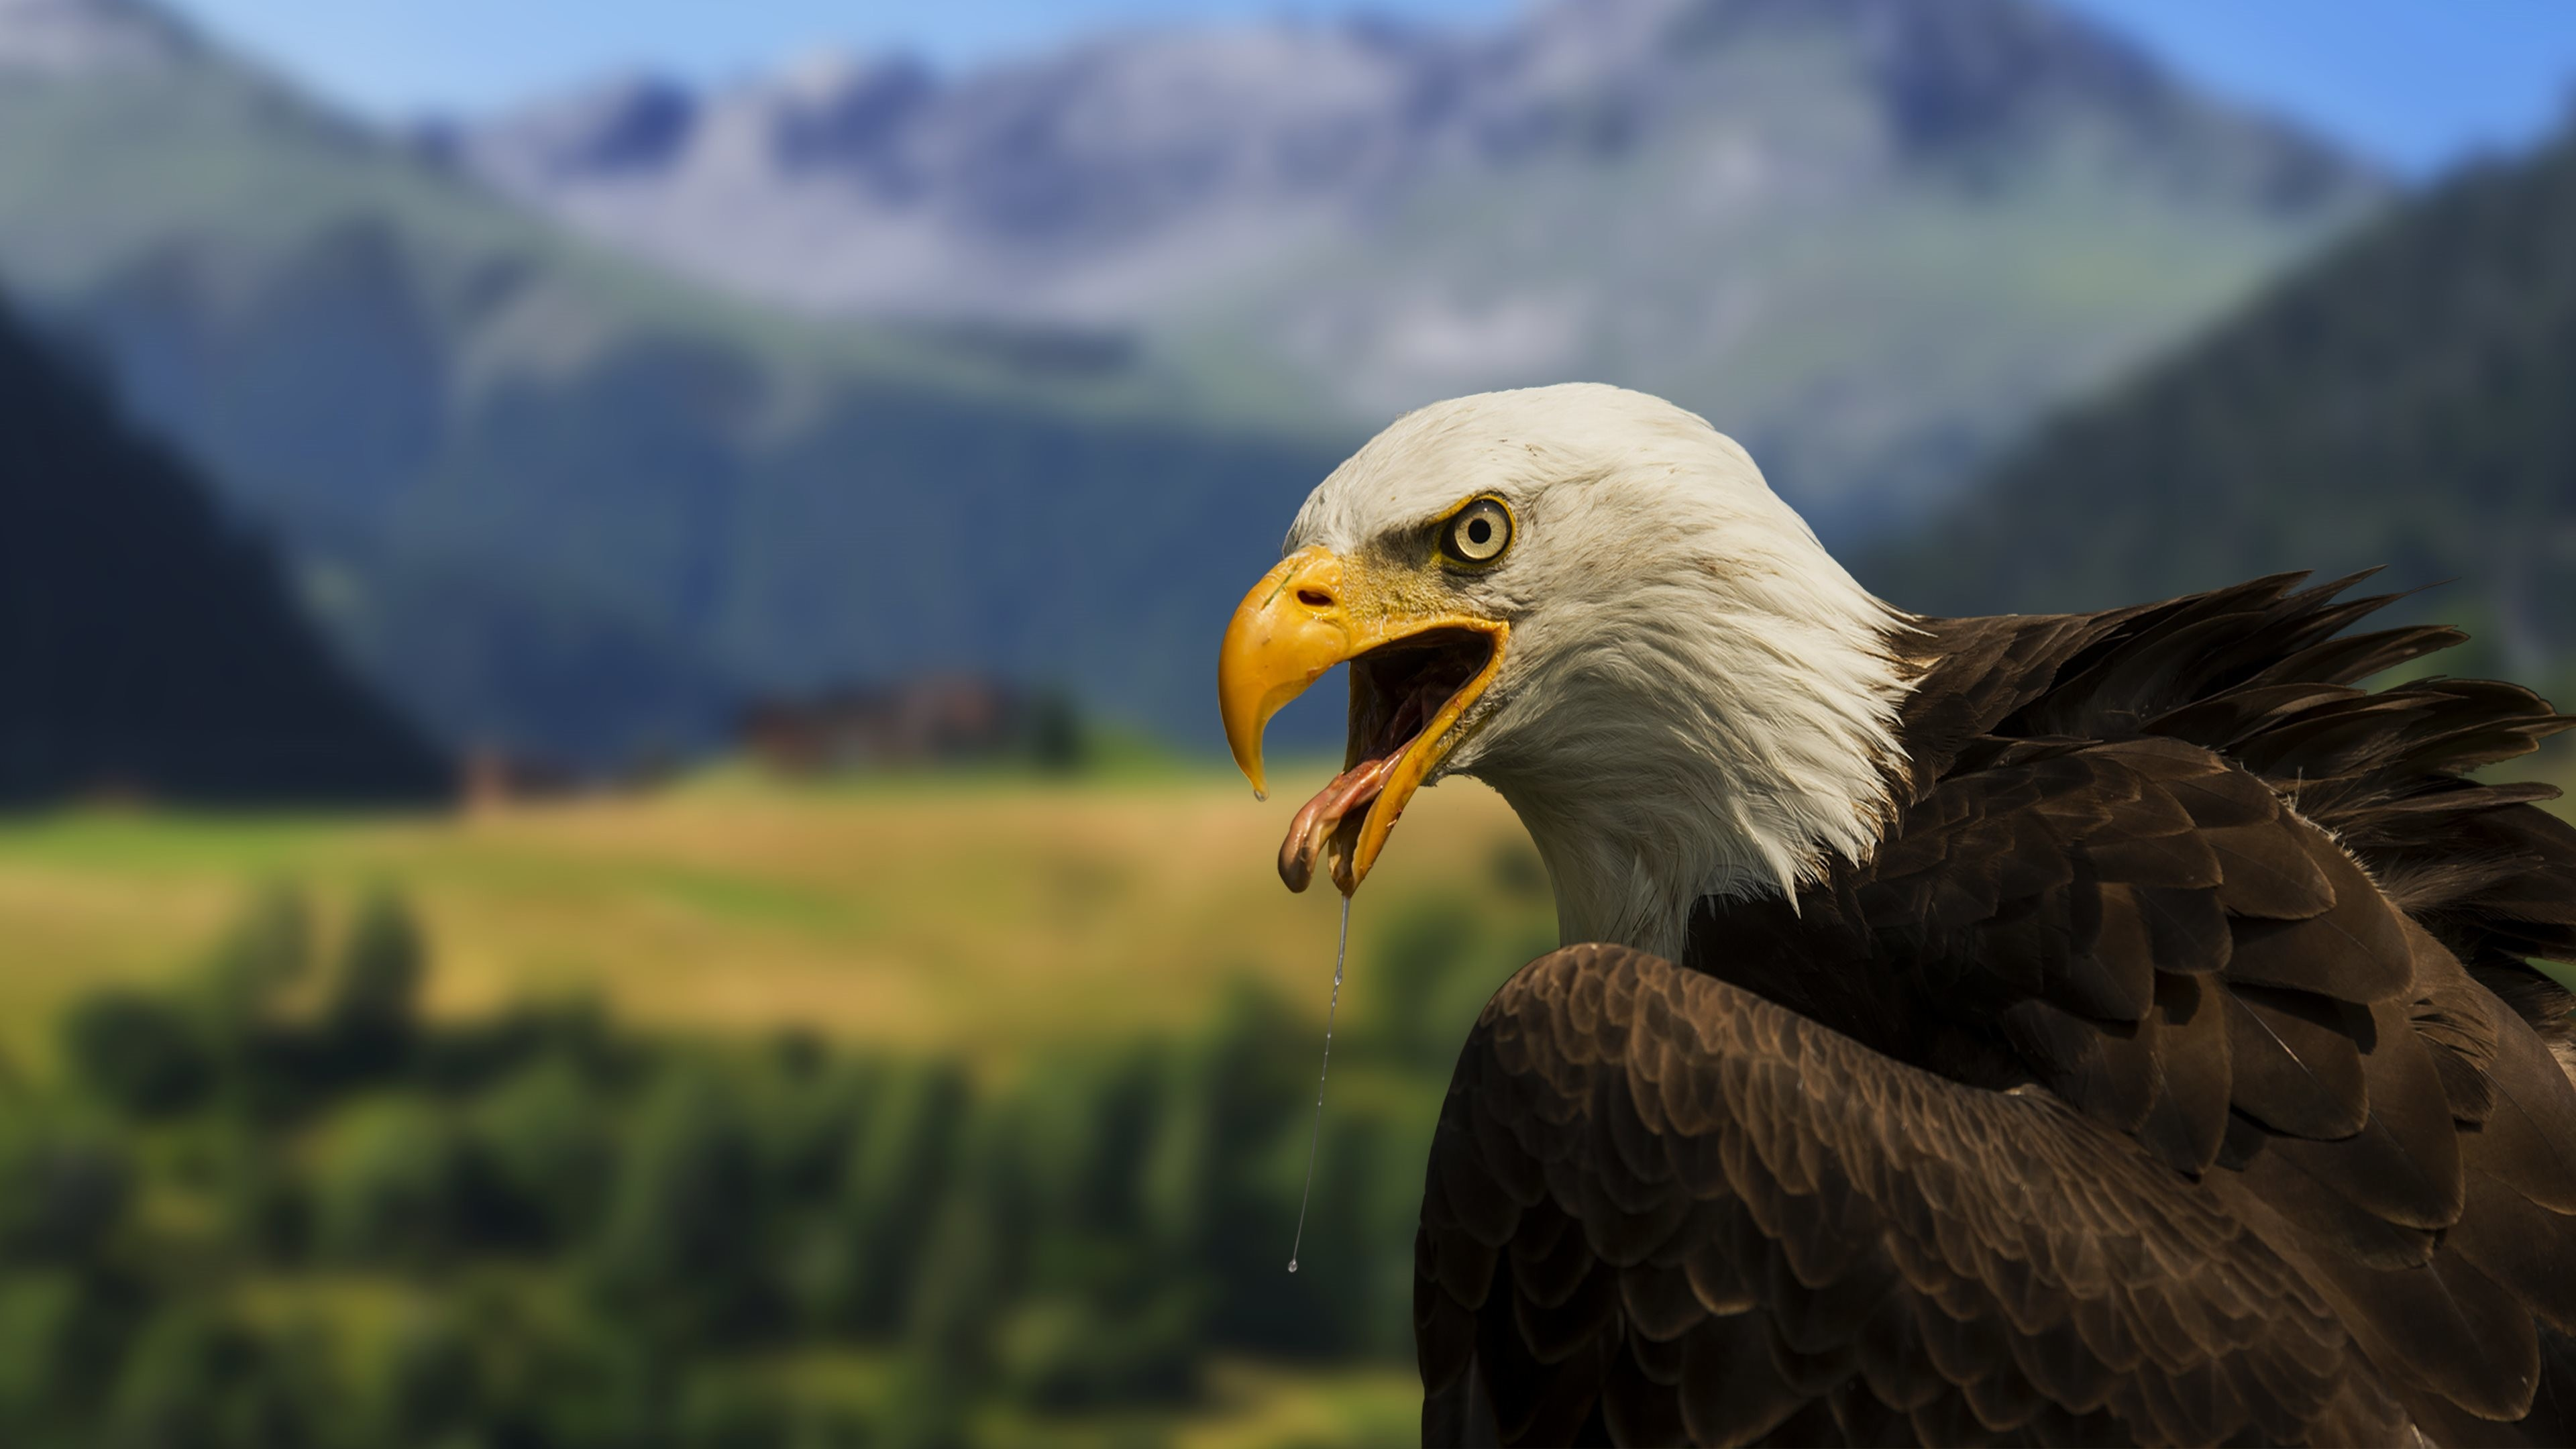 3840x2160 Bald Eagle – 4K Wallpaper :: Full (1080p) & Ultra .